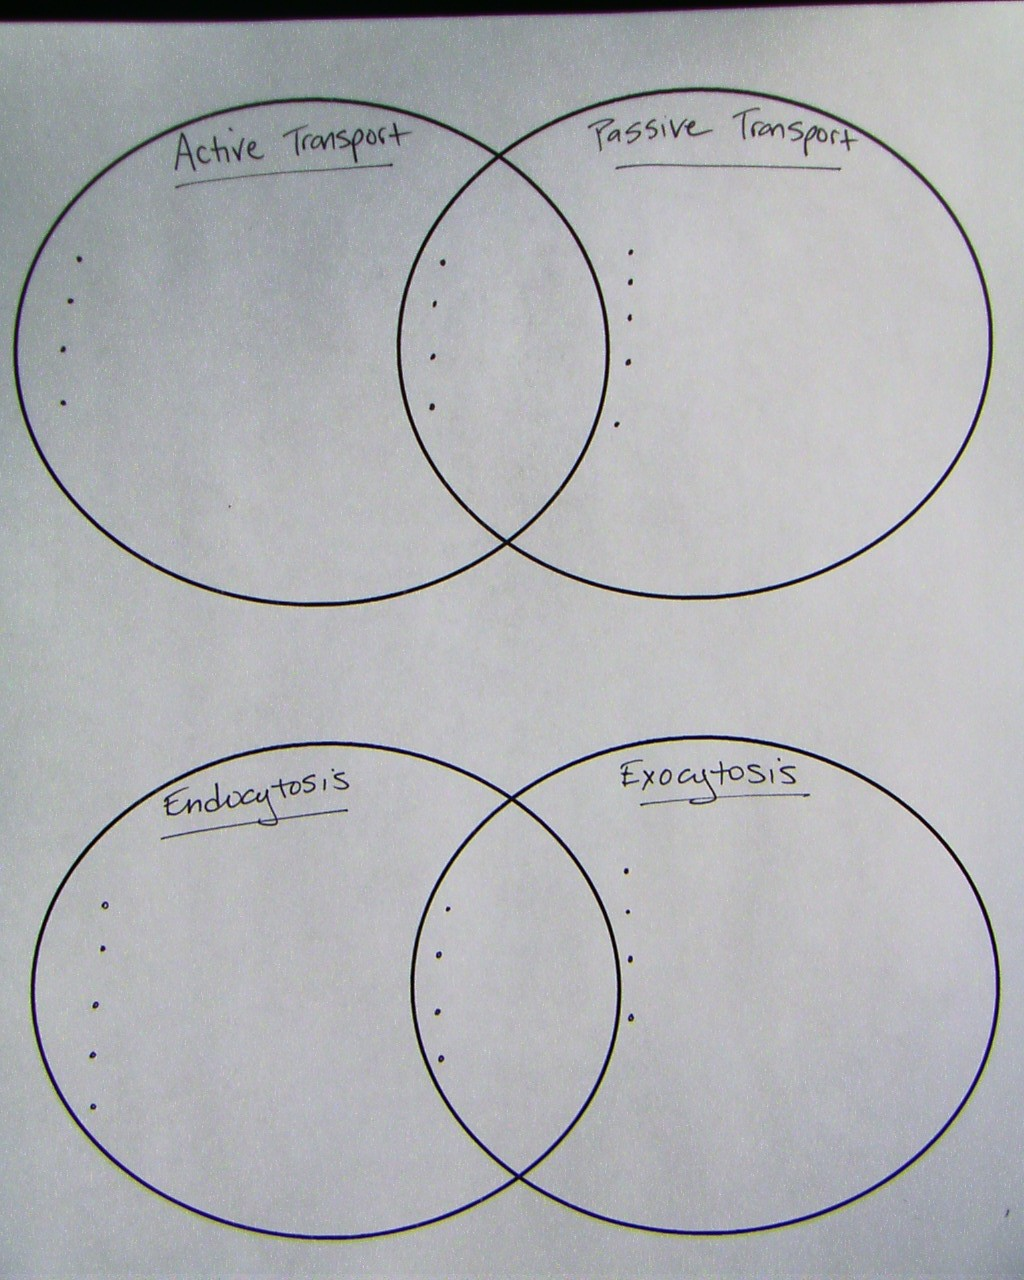 passive and active transport venn diagram wu tang clan for